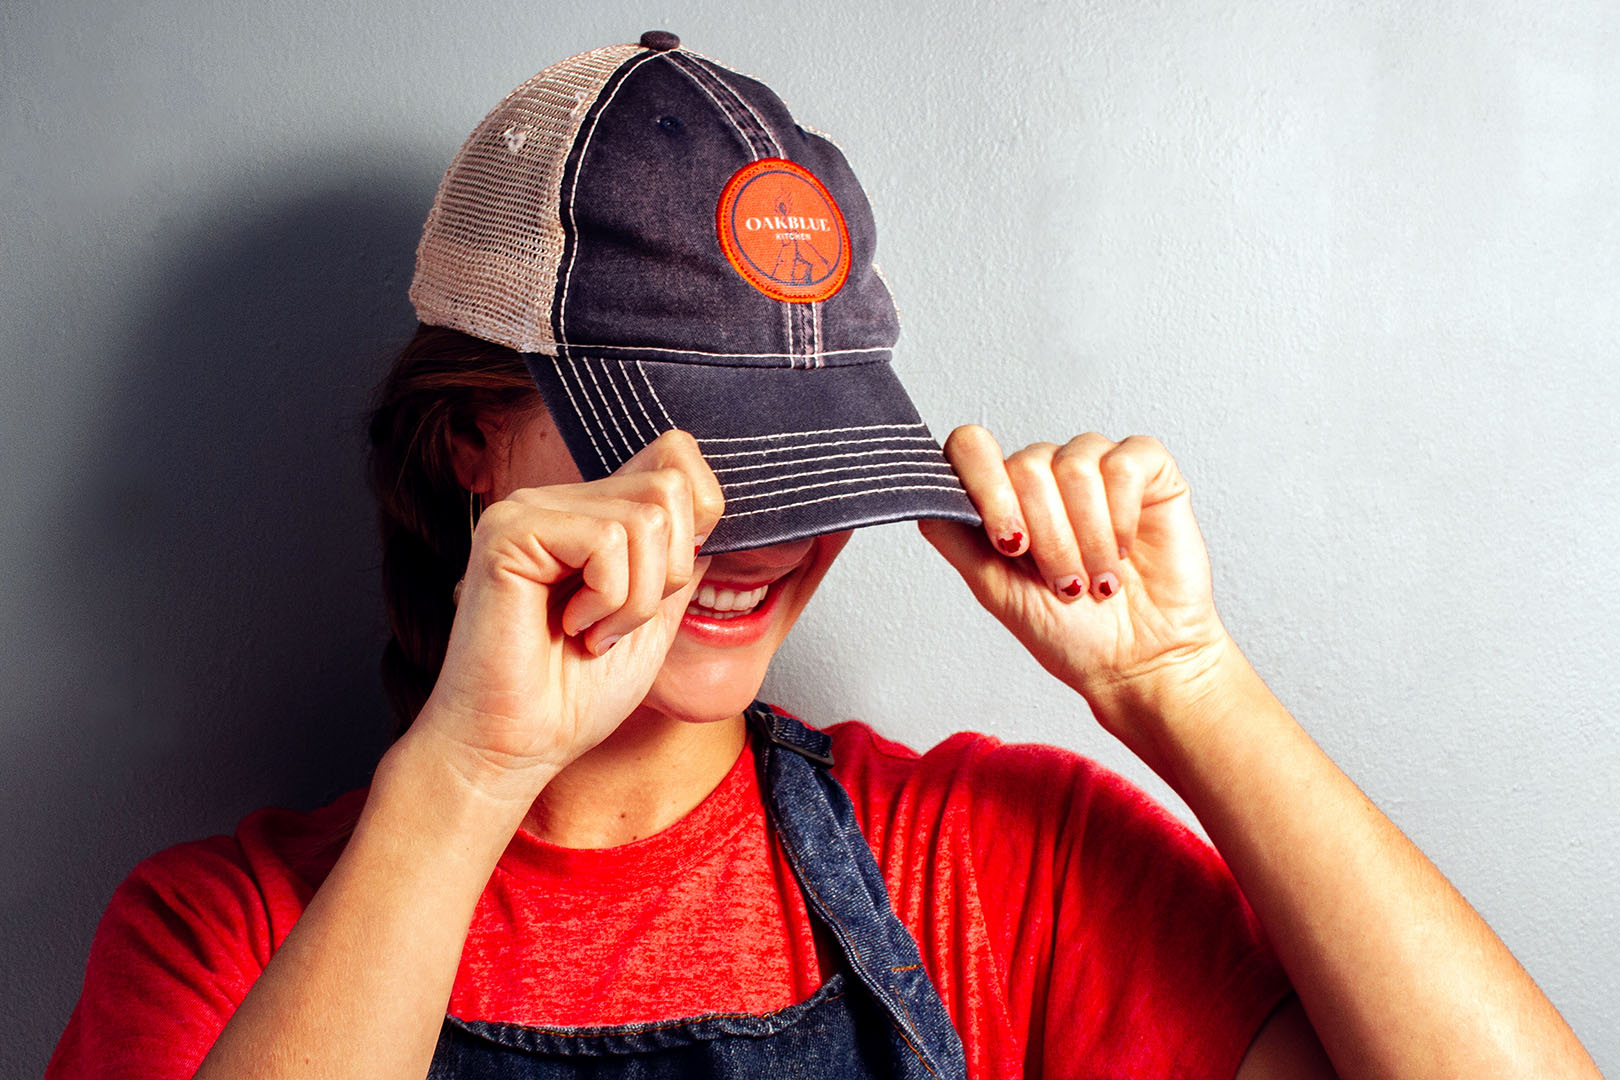 Woman pulls navy trucker hat over her face, revealing the embroidered patch for the restaurant branding and logo design on the front of the ball cap.